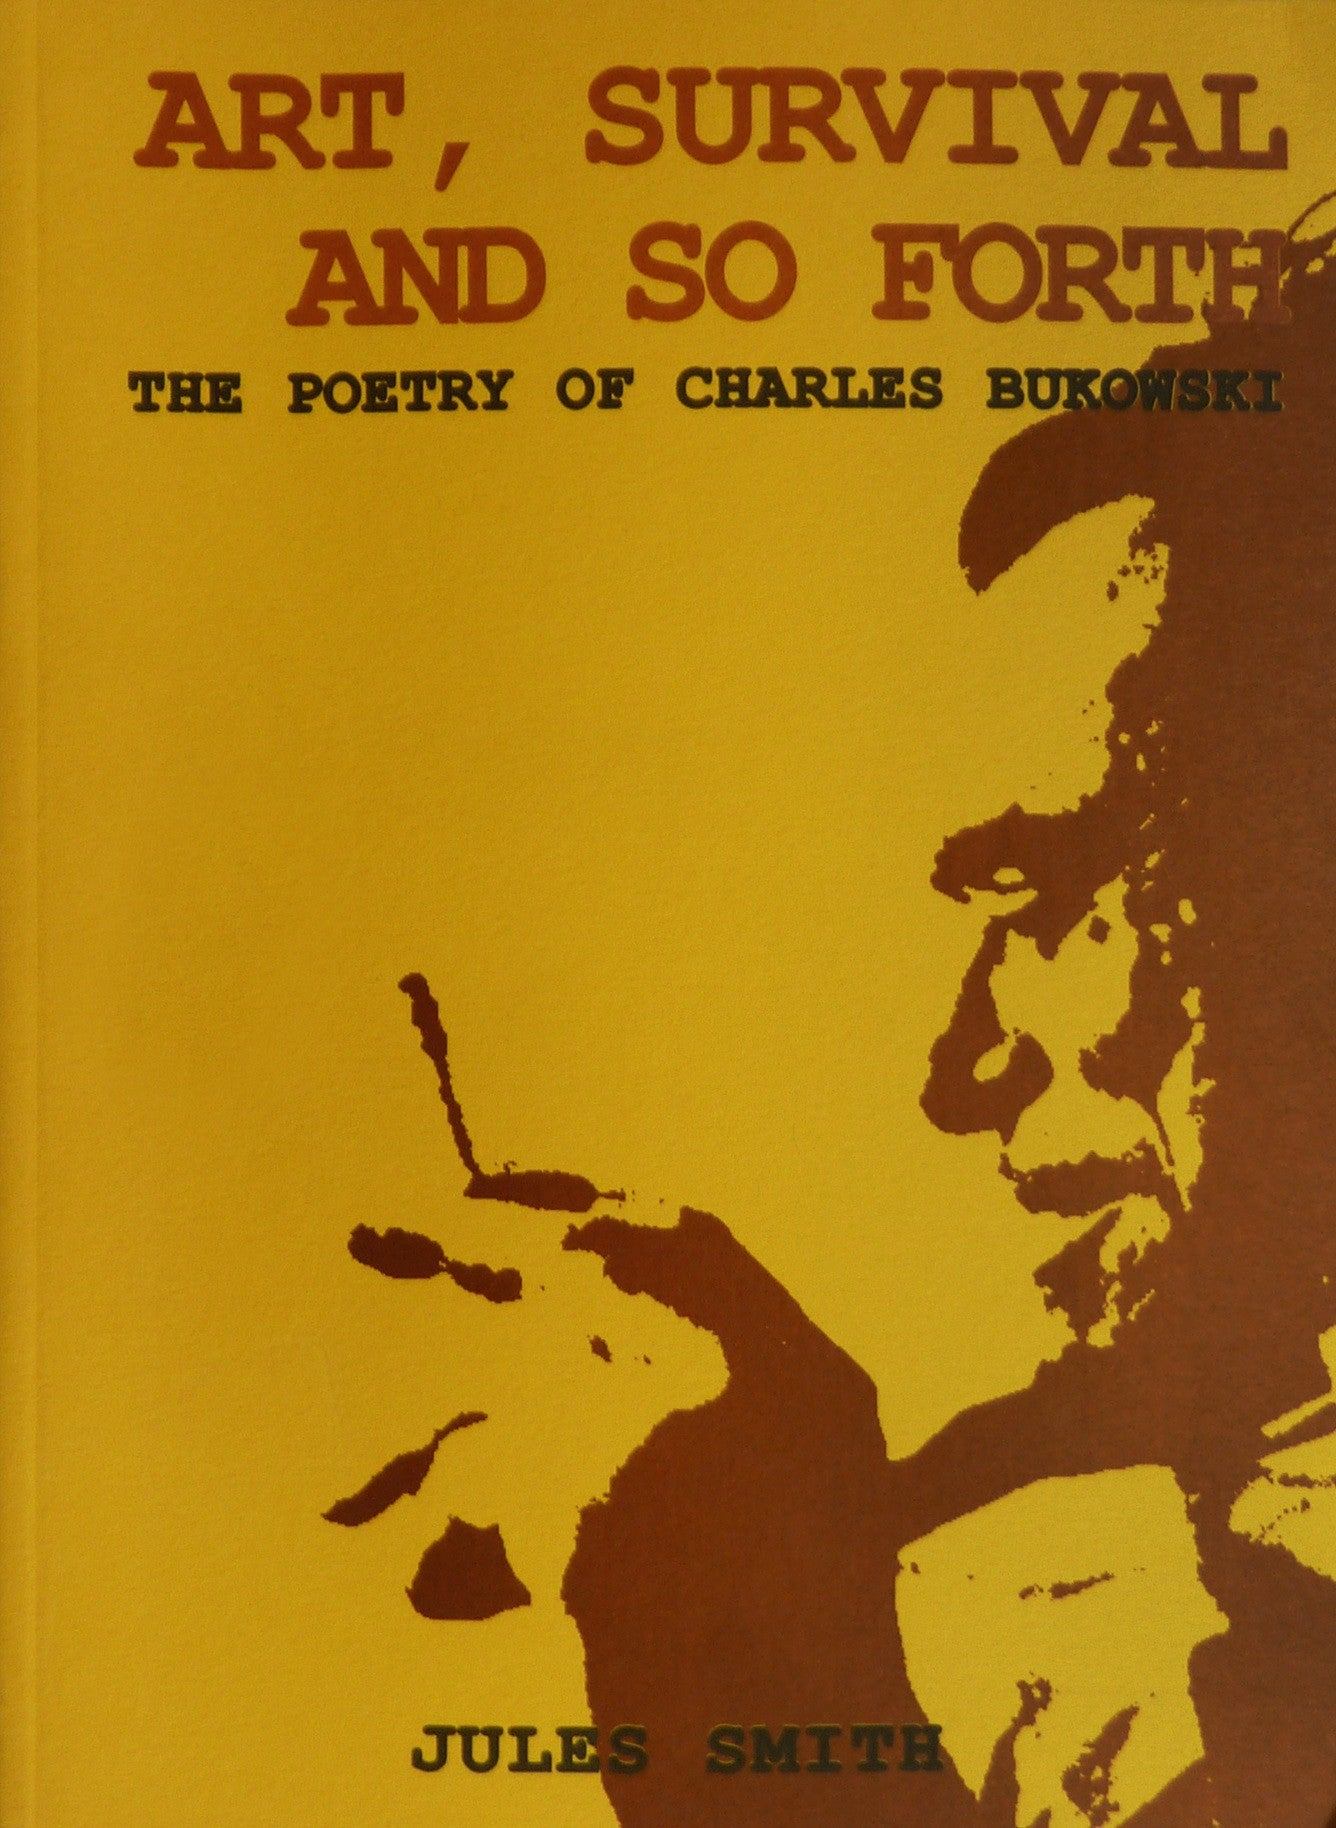 Art, Survival & So Forth: The Poetry of Charles Bukowski